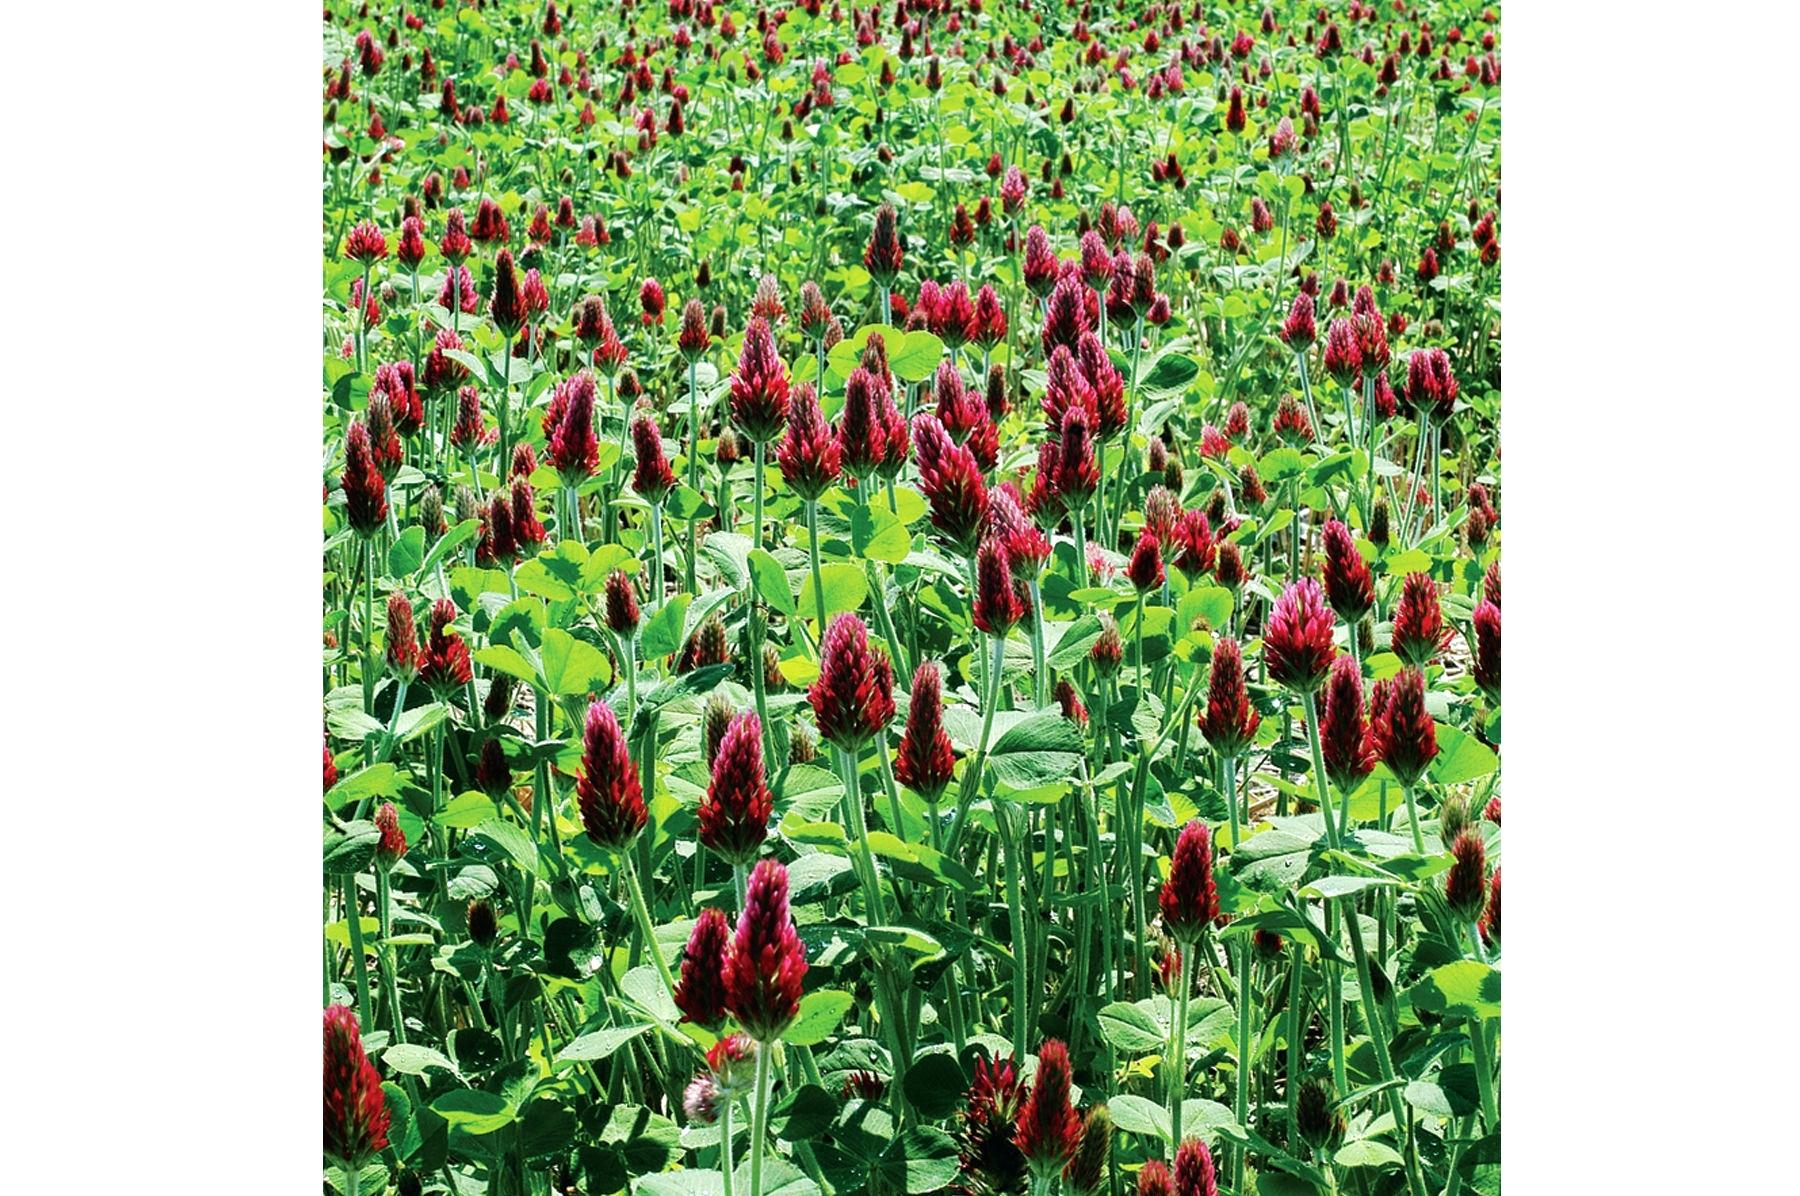 clover plant red care edible plants for sale near me